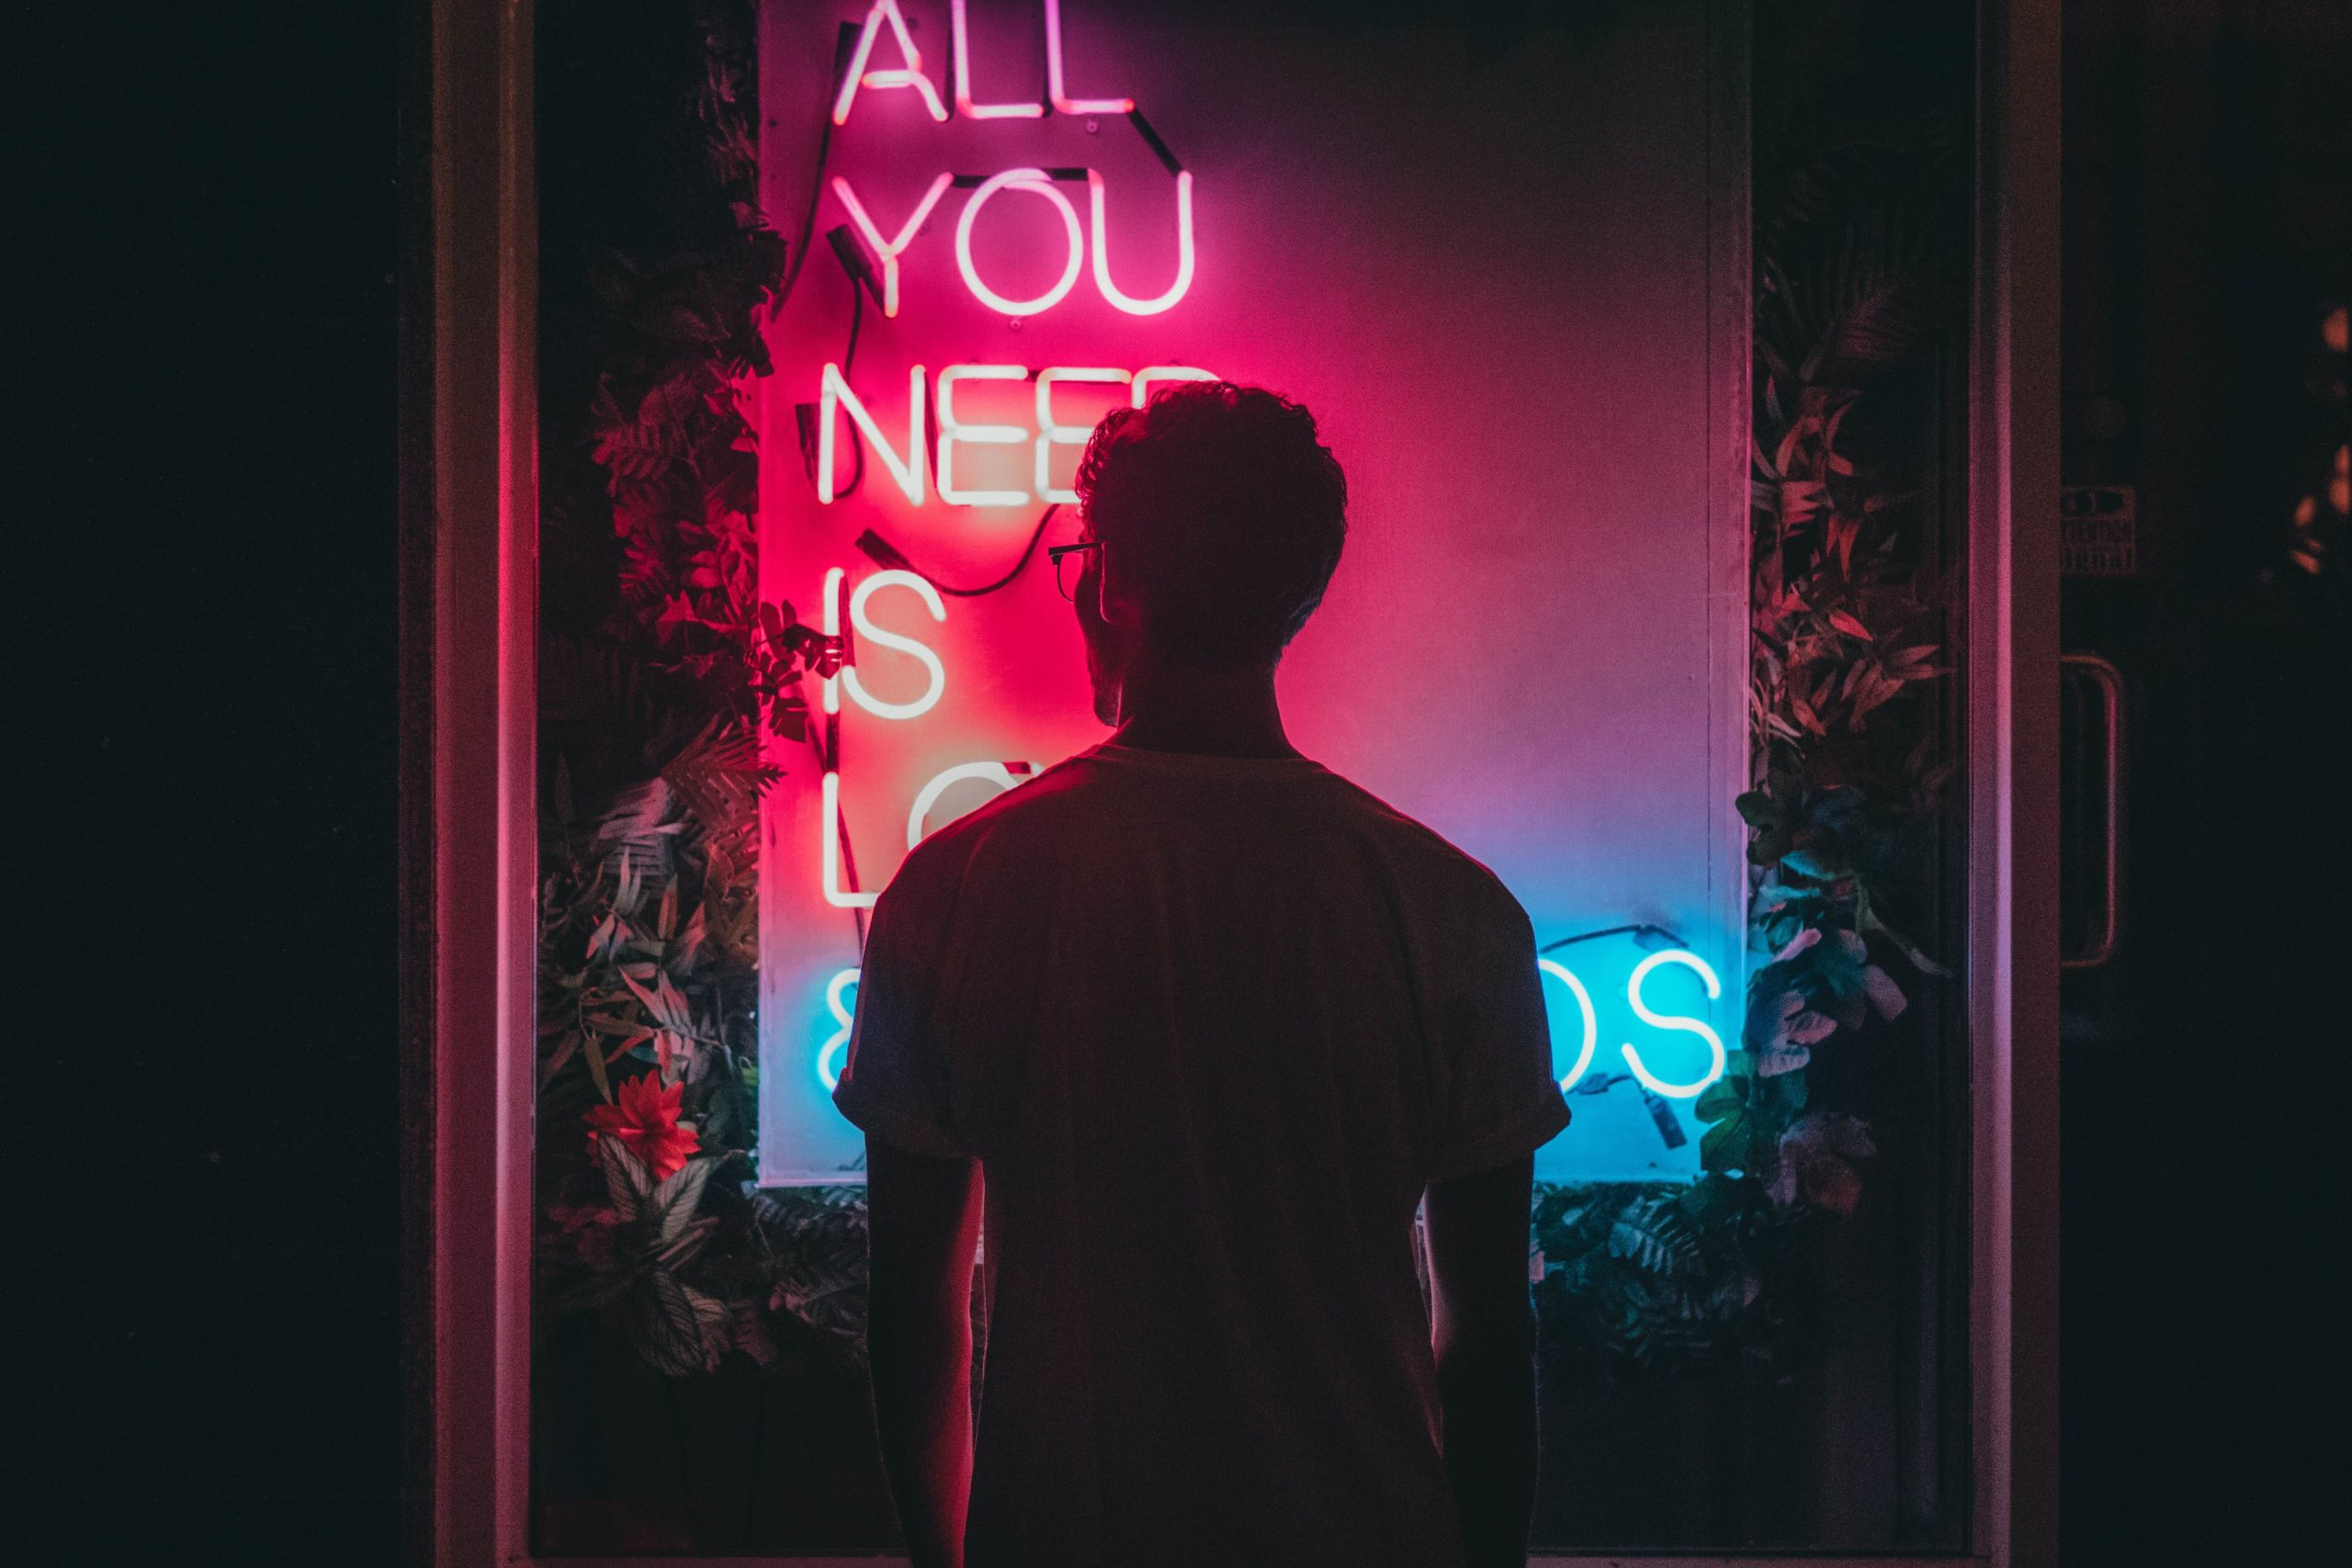 image of silhouette of man standing in front of neon lights